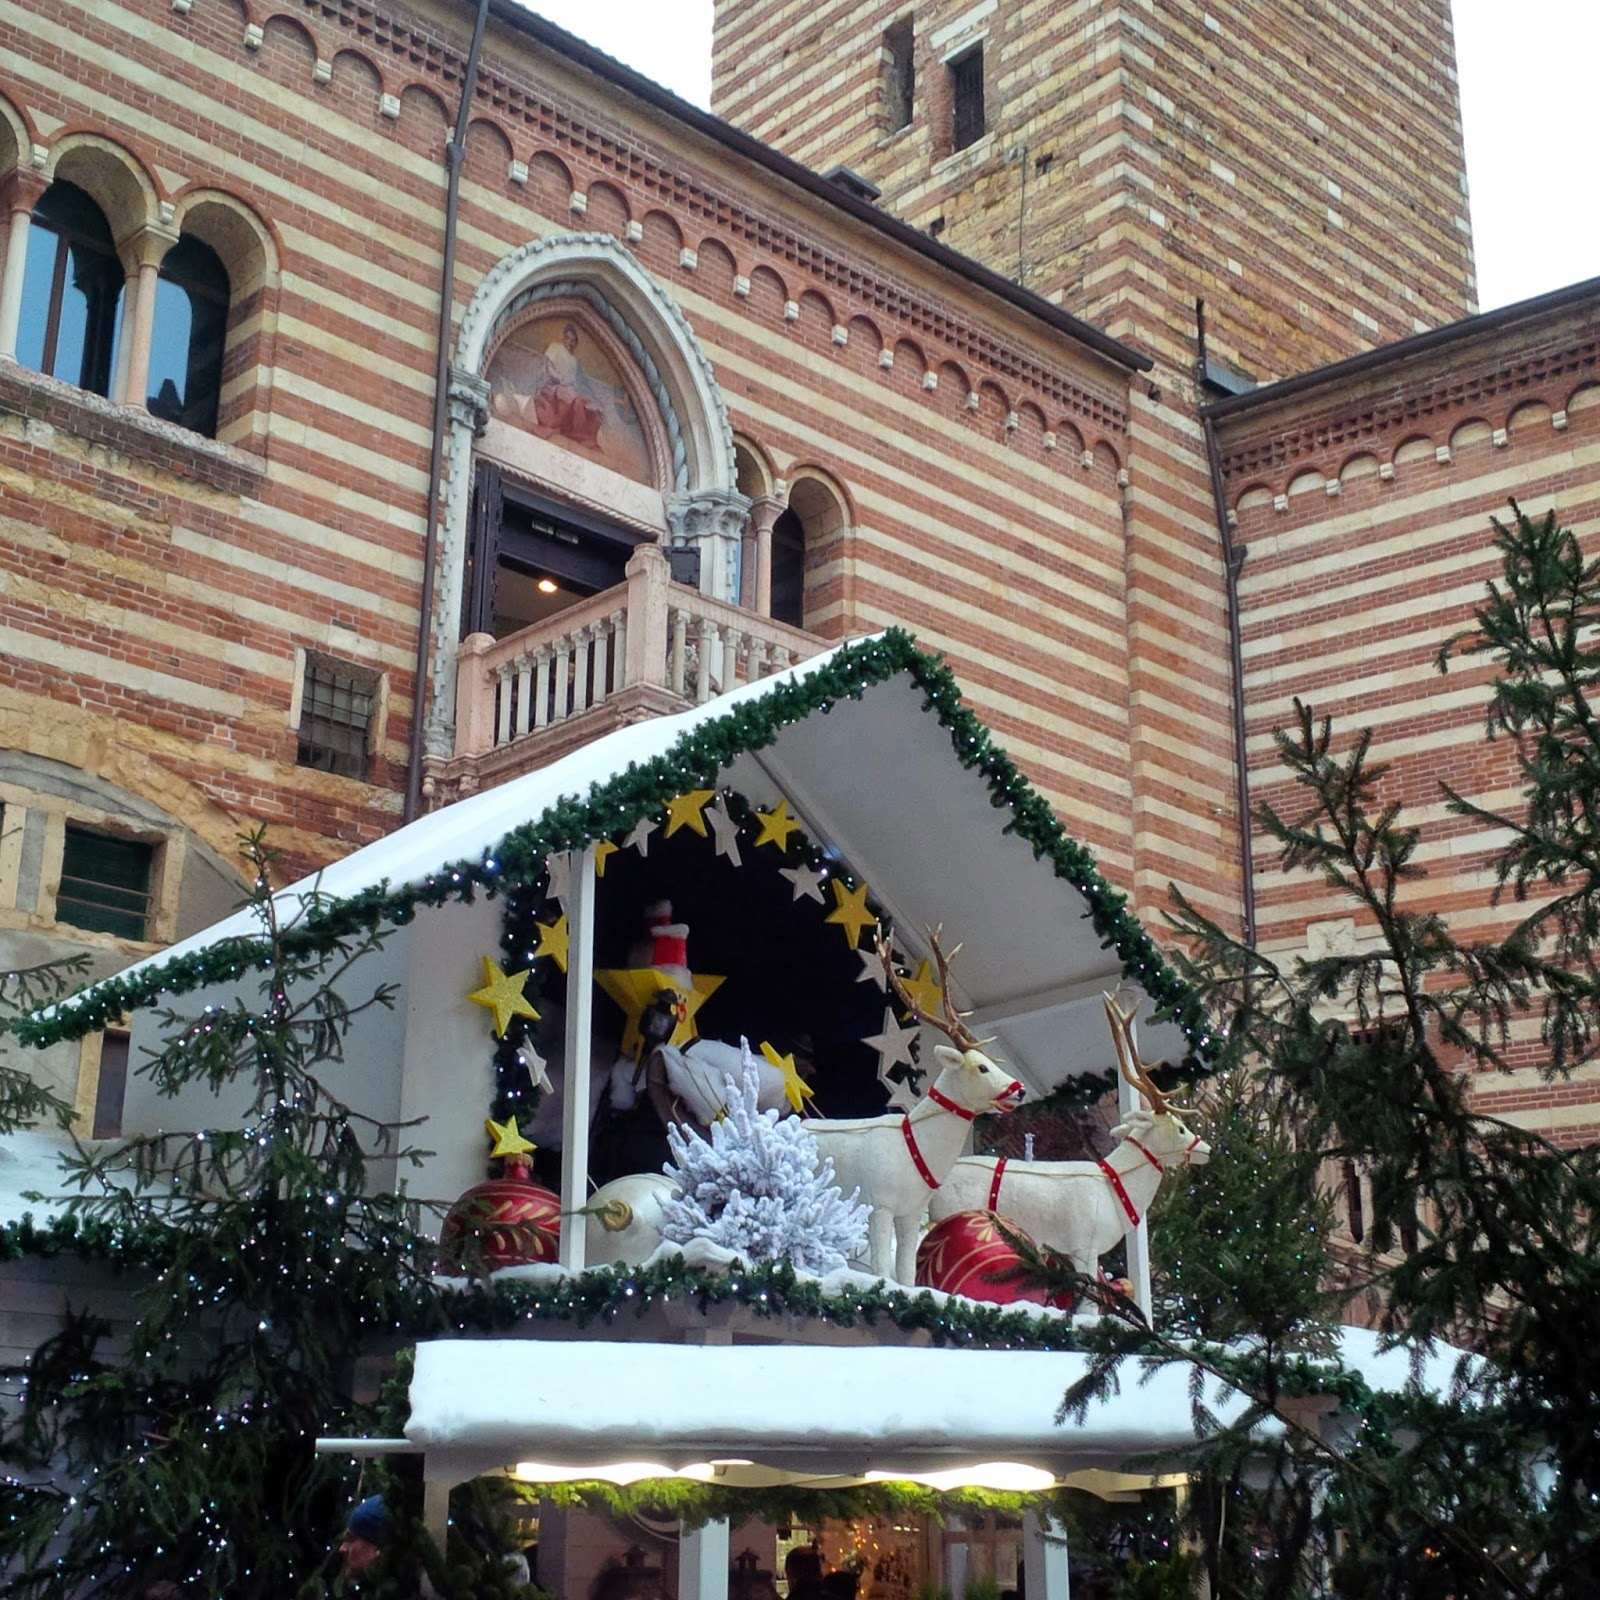 Santa Claus' reindeer and sleigh at the Christmas market in Verona